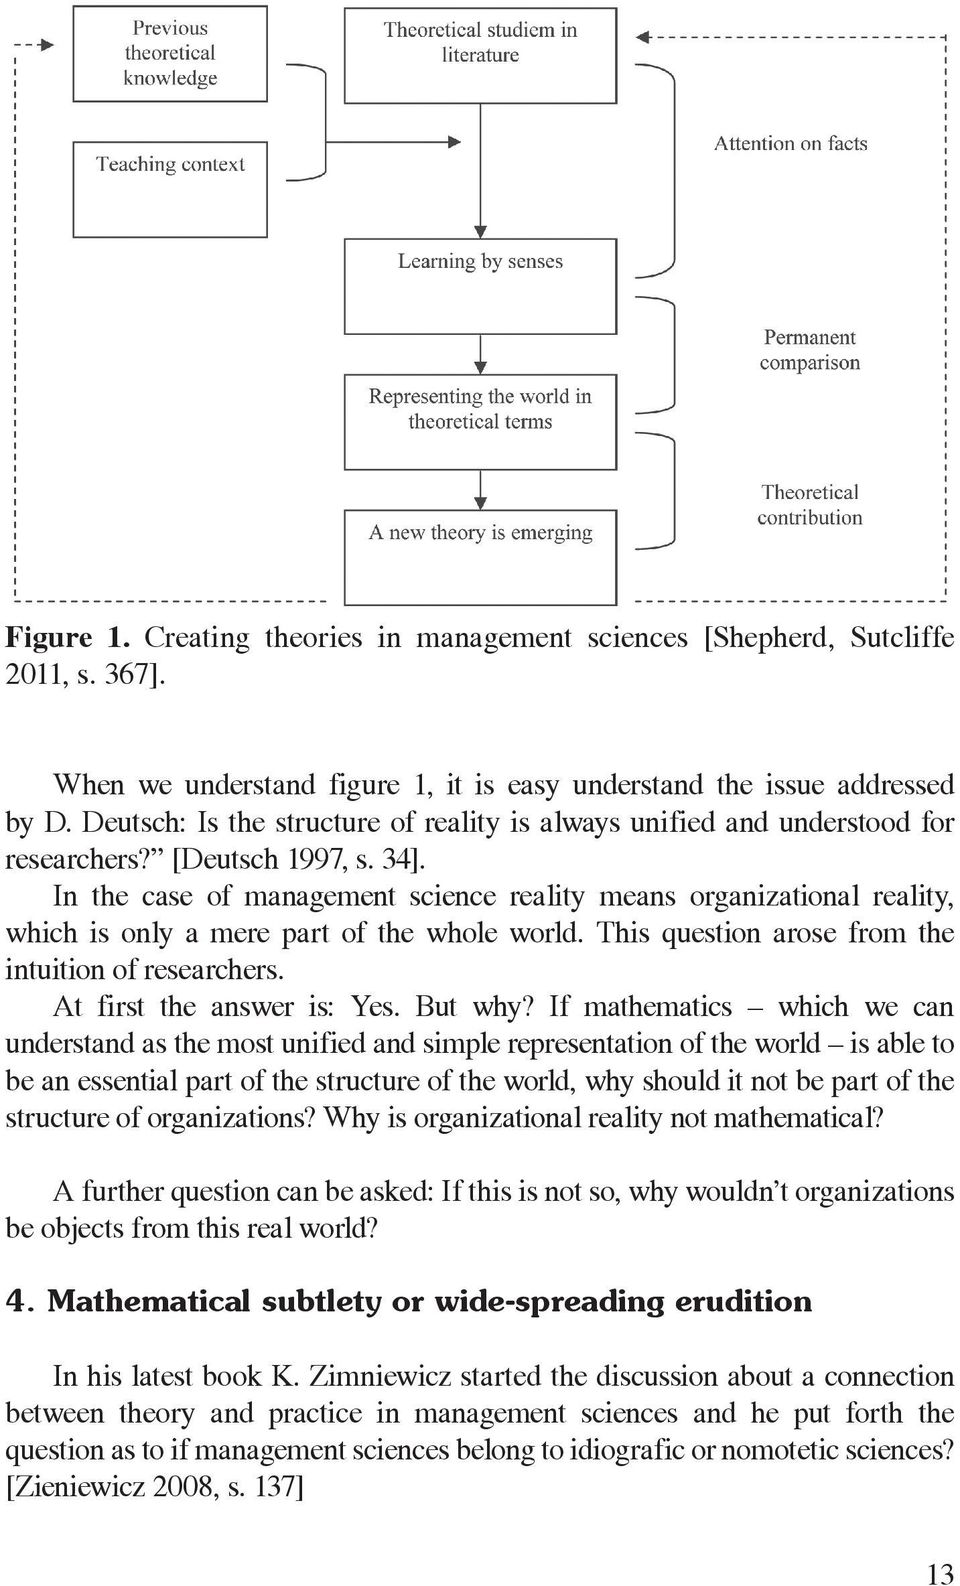 In the case of management science reality means organizational reality, which is only a mere part of the whole world. This question arose from the intuition of researchers.